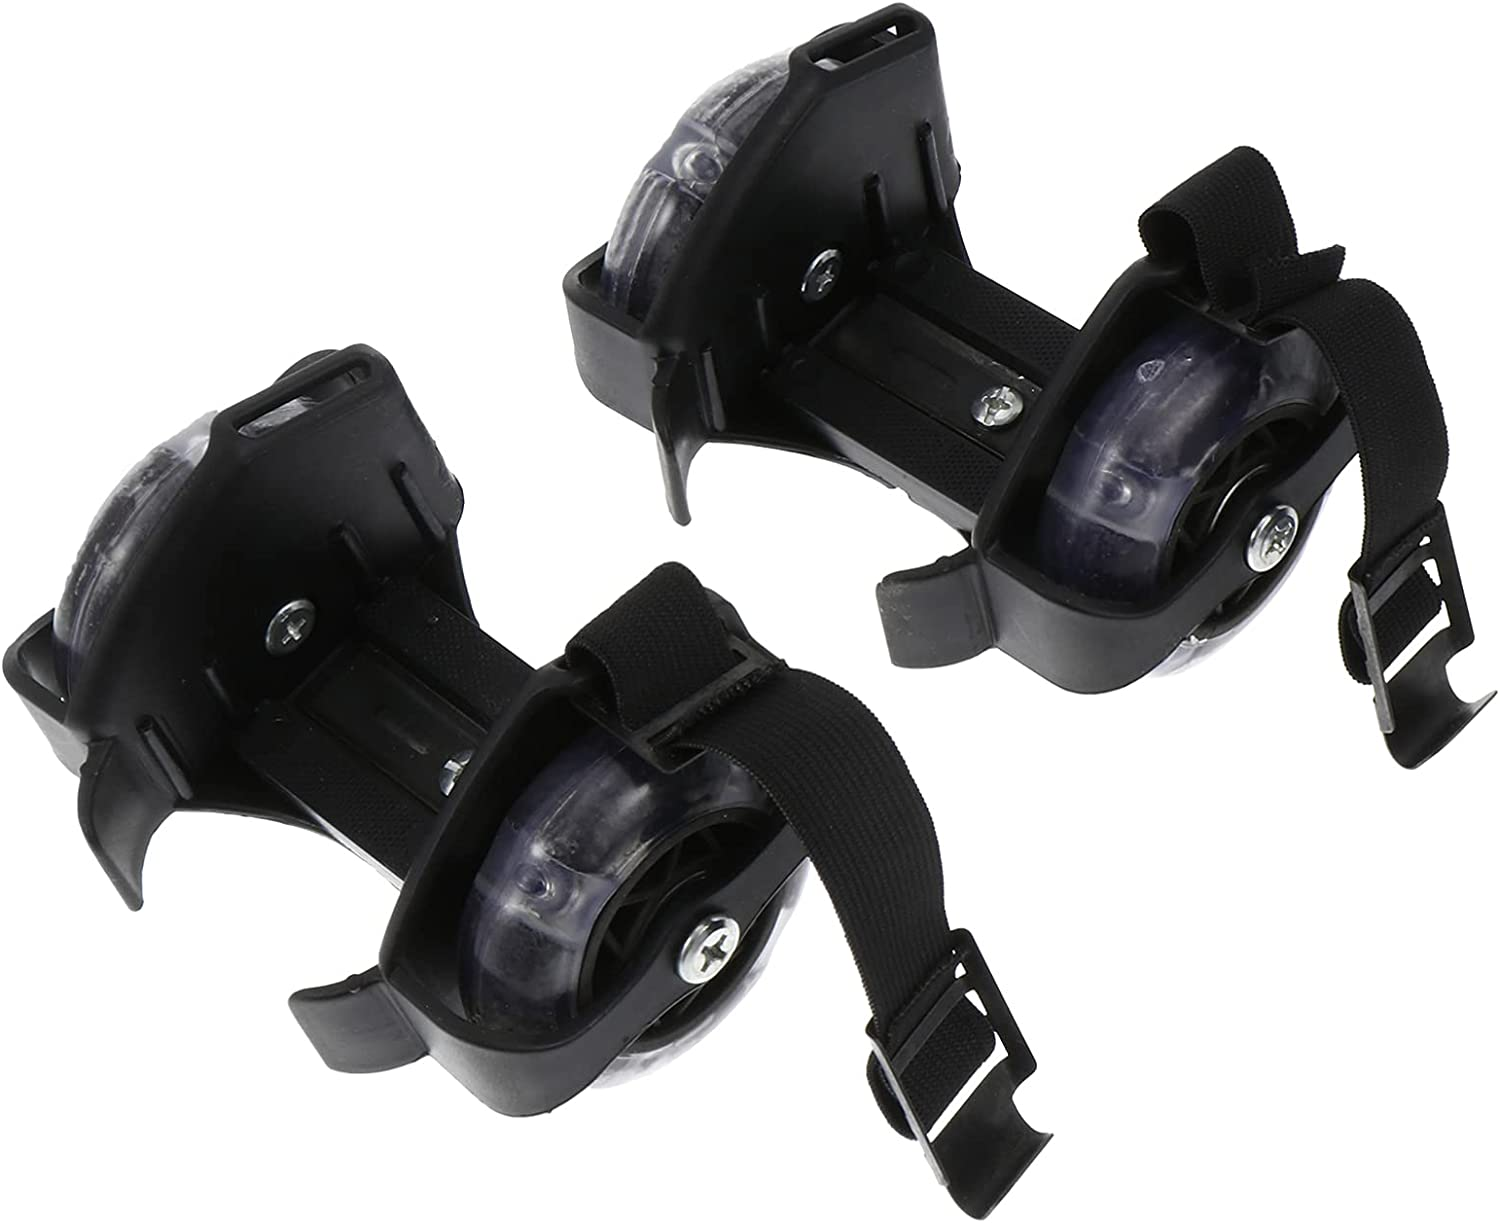 BESPORTBLE 1 Pair Light Up Skate Adjustable Rollers with Bombing Max 85% OFF free shipping Tw Band